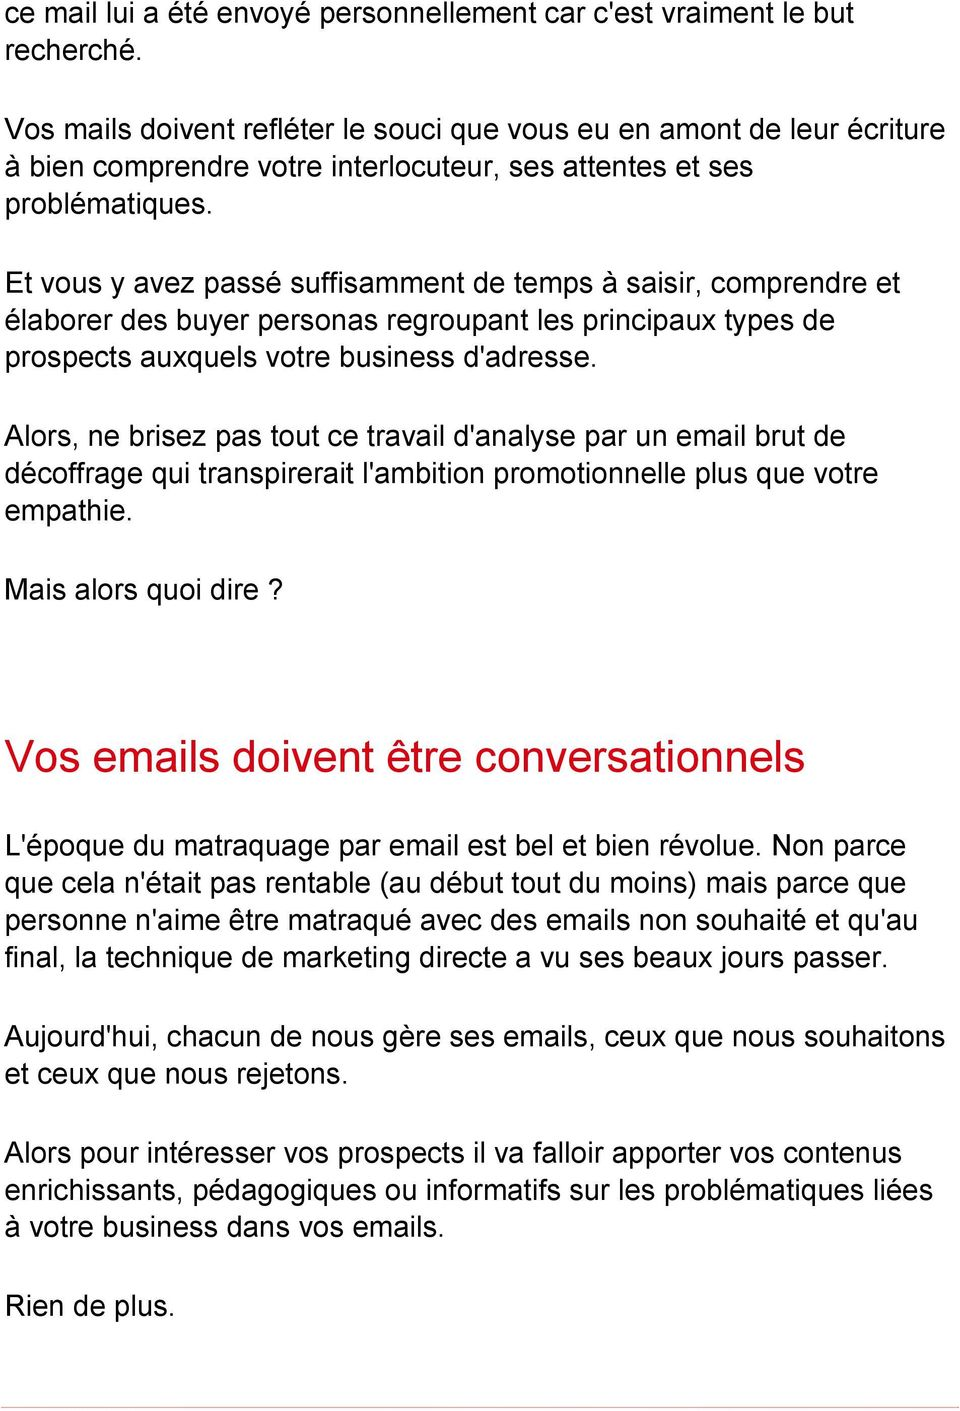 Et vous y avez passé suffisamment de temps à saisir, comprendre et élaborer des buyer personas regroupant les principaux types de prospects auxquels votre business d'adresse.